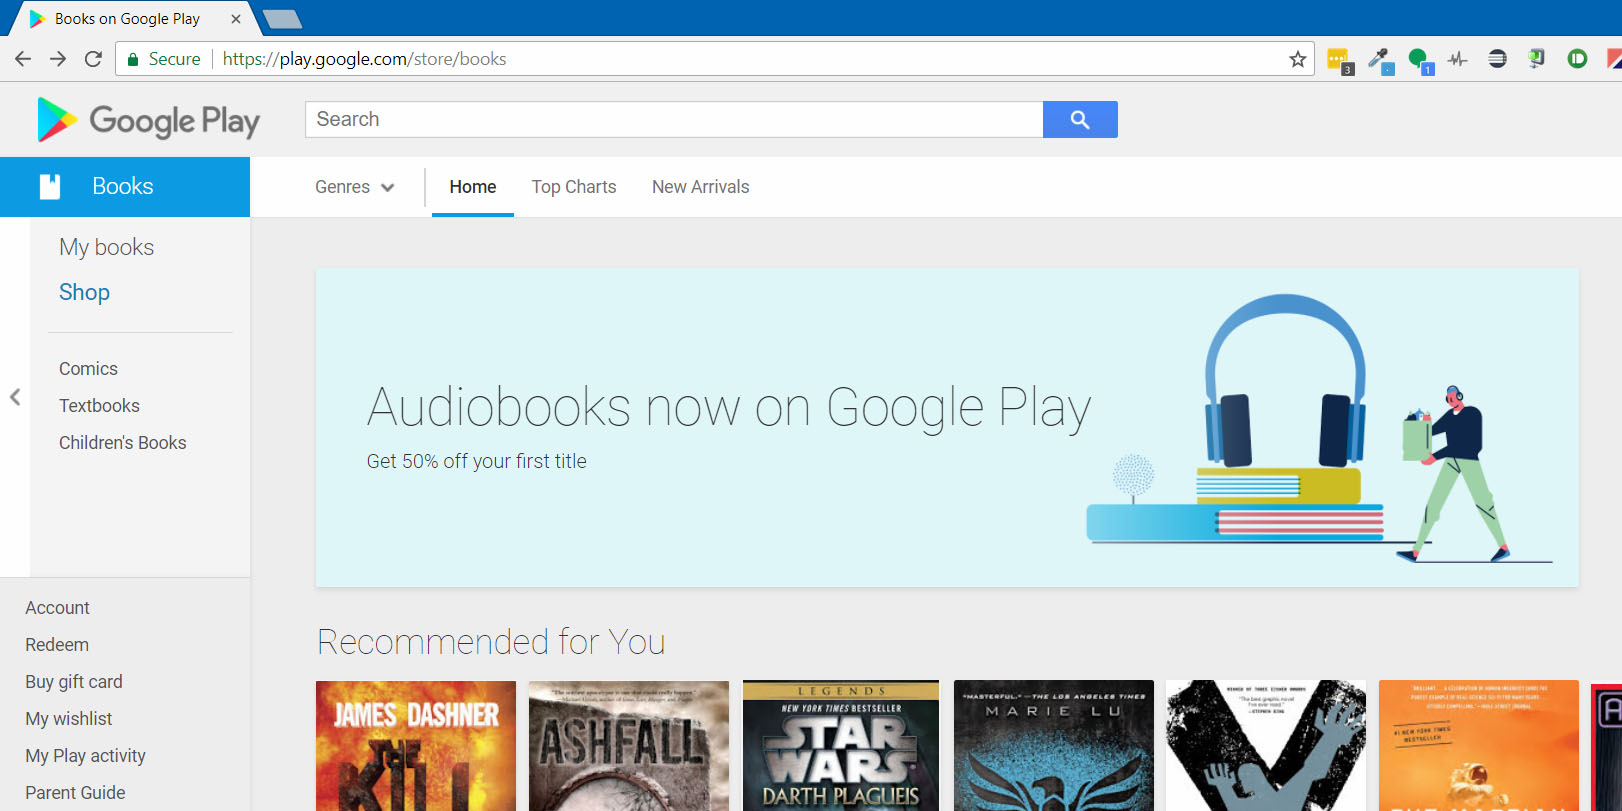 Google Play teases audiobook sales ahead of official arrival, will